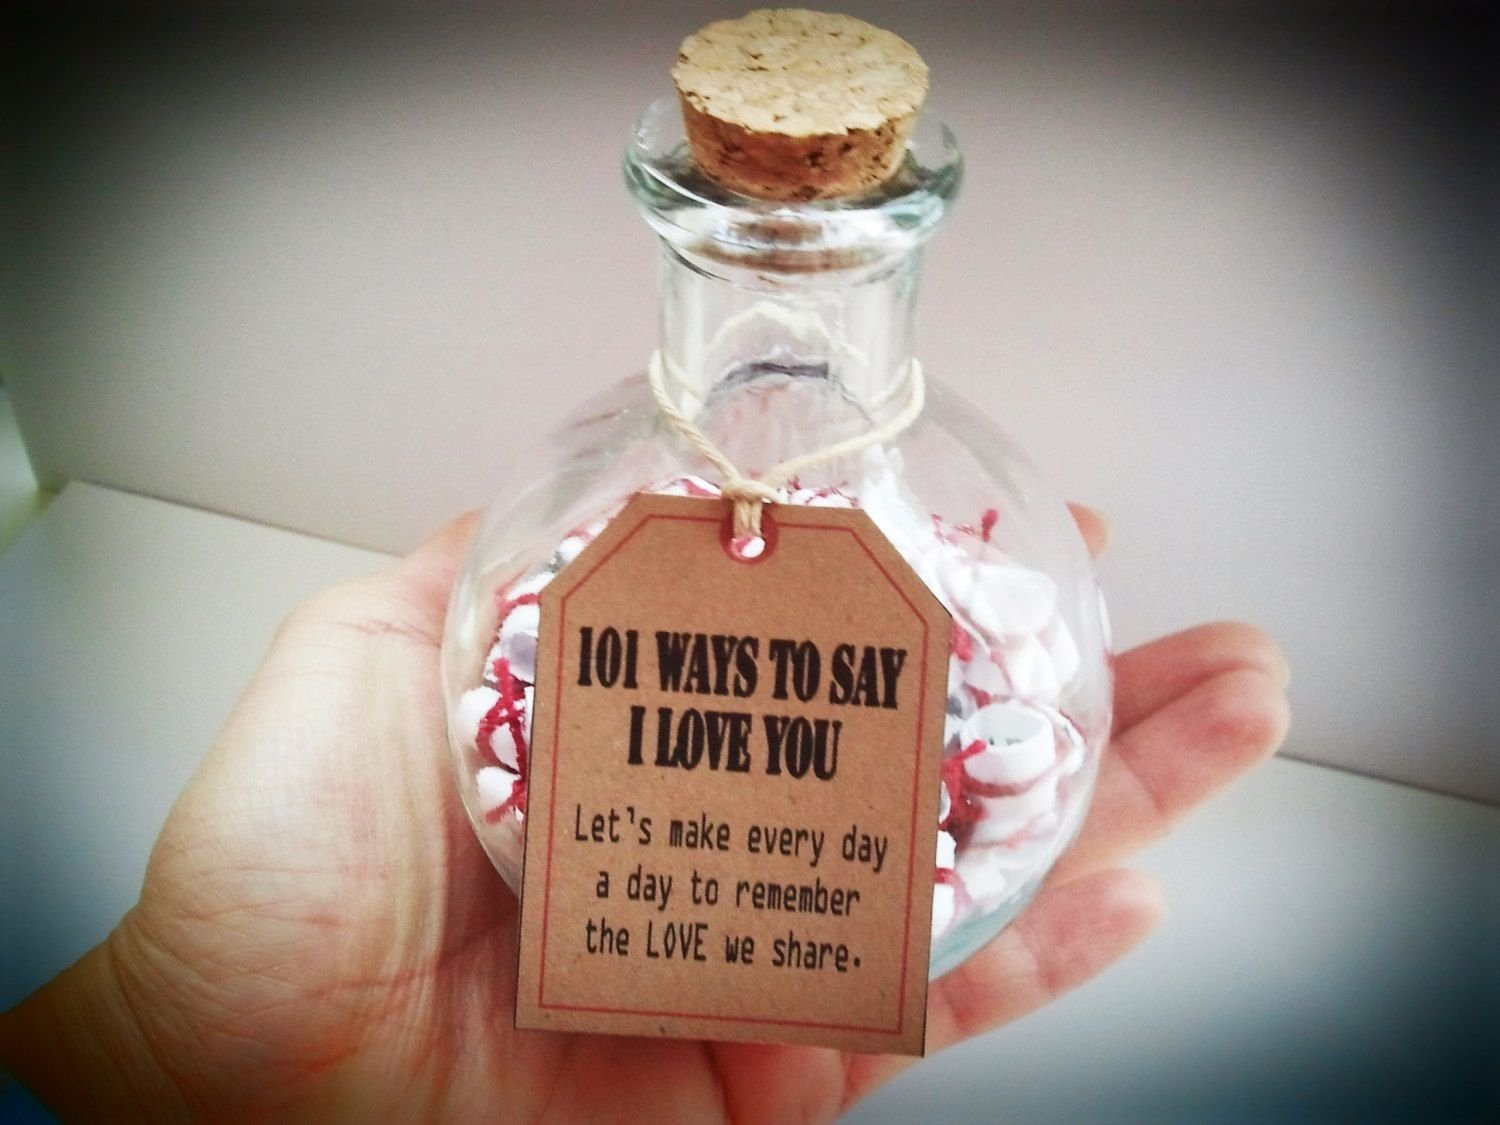 10 Most Recommended Creative Gift Ideas For Wife anniversary gifts gift of love 101 ways to say i love you 1 2021